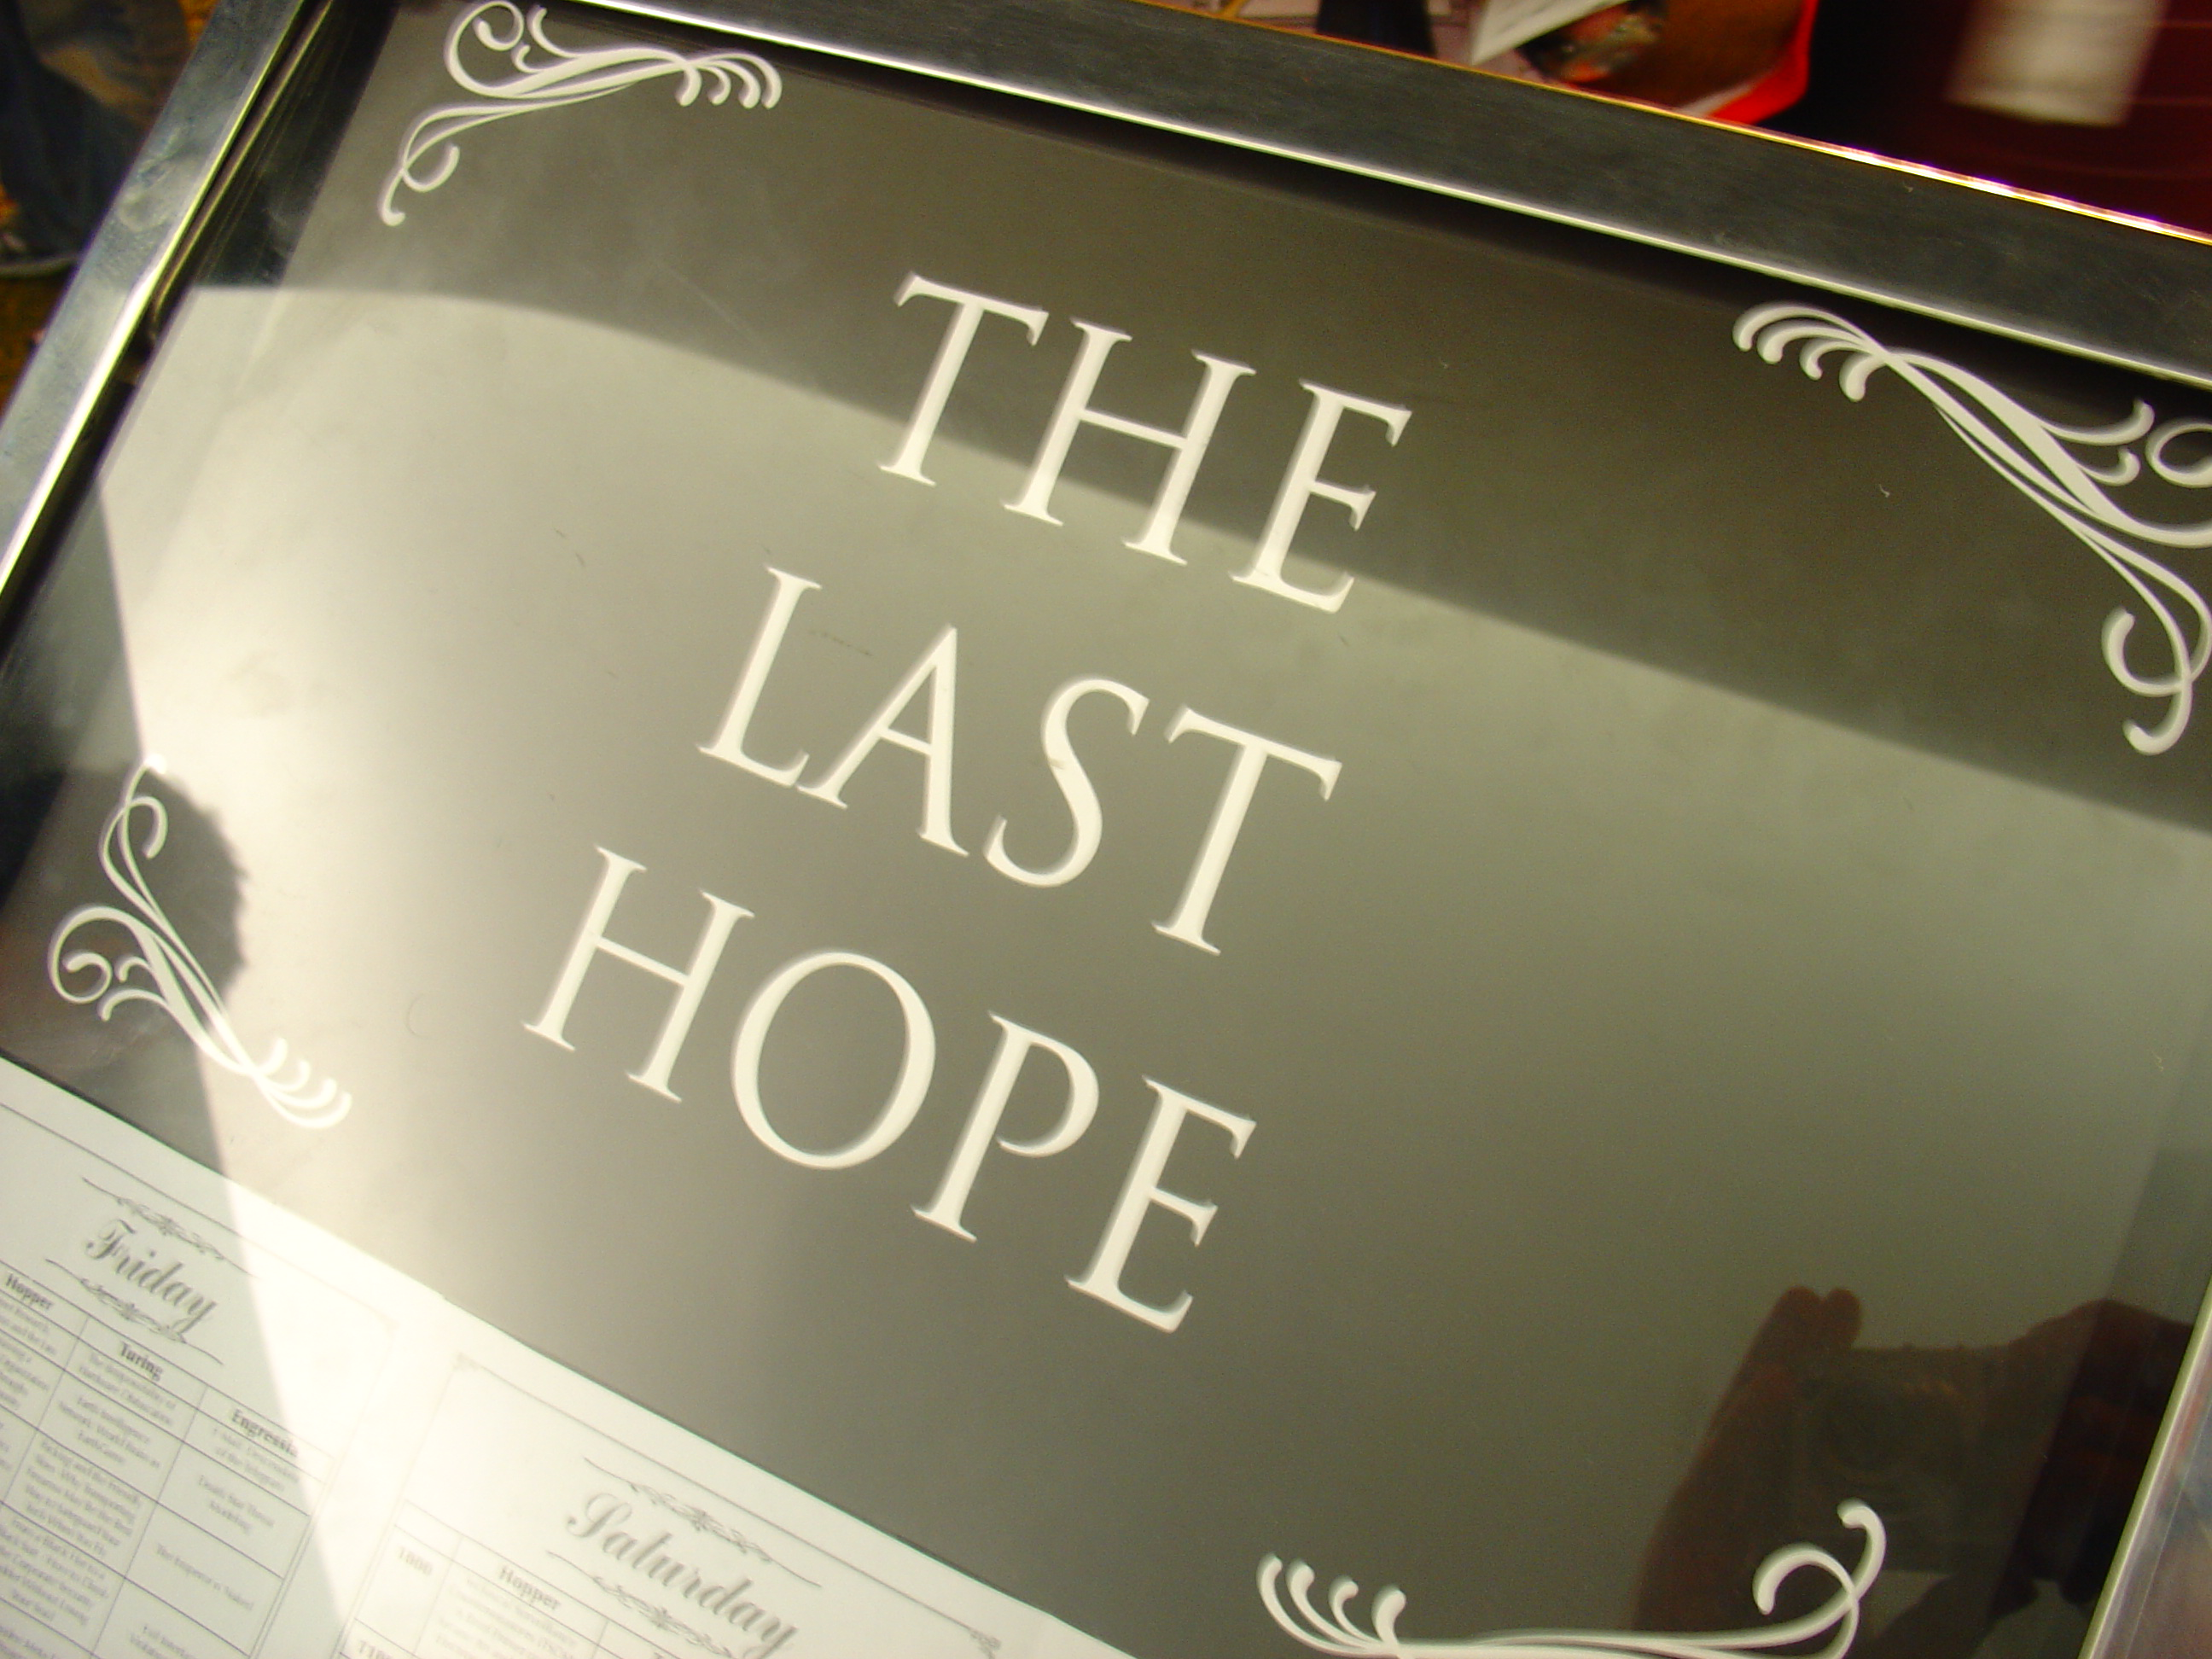 Image result for Last hope